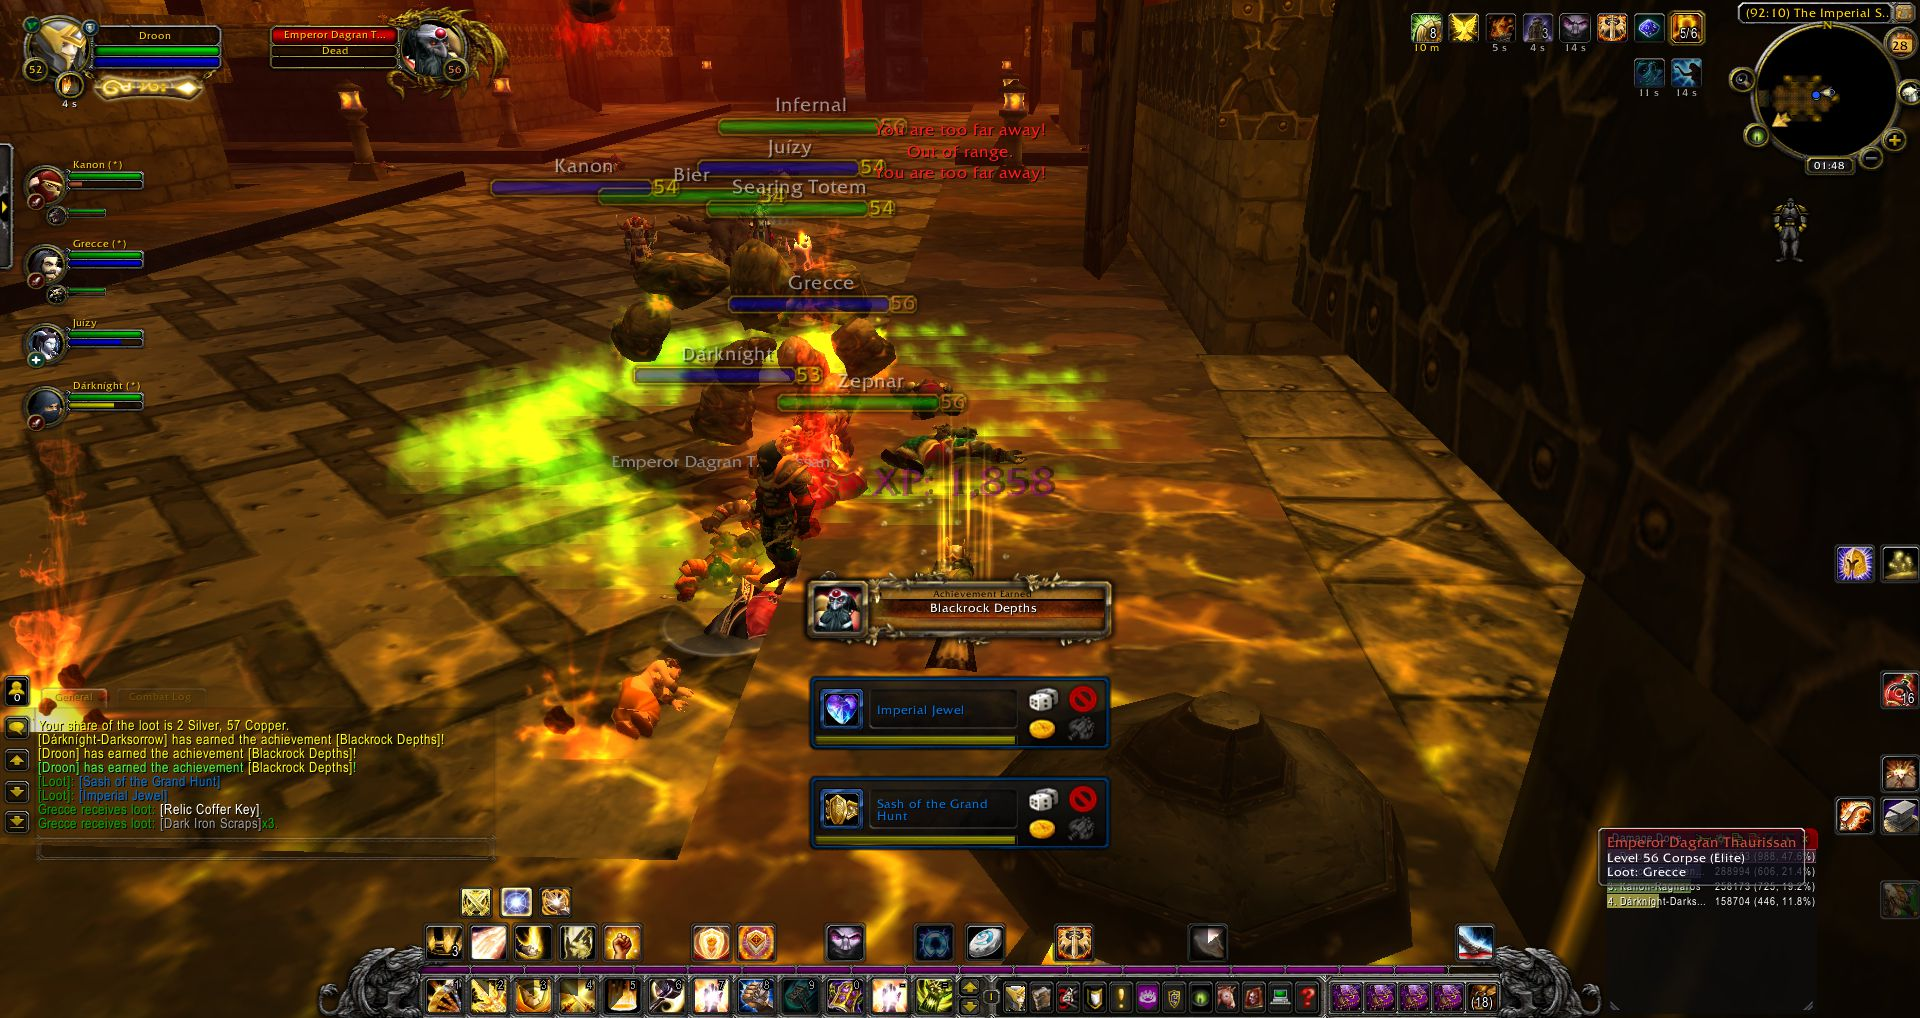 Blackrock Depths wow screenshot